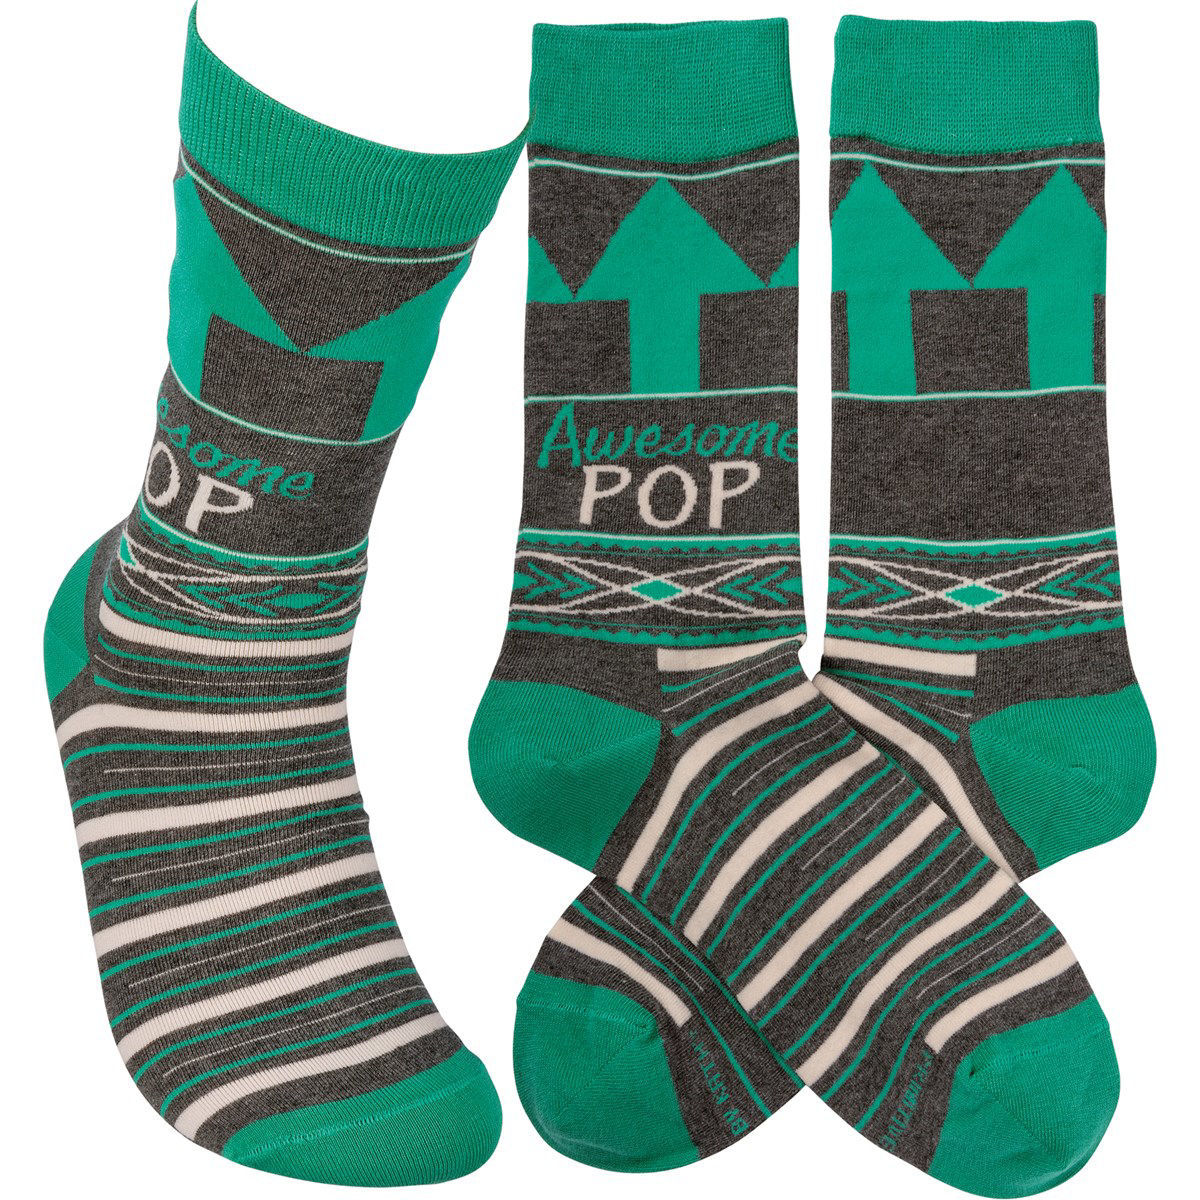 Awesome Pop Socks by Primitives by Kathy